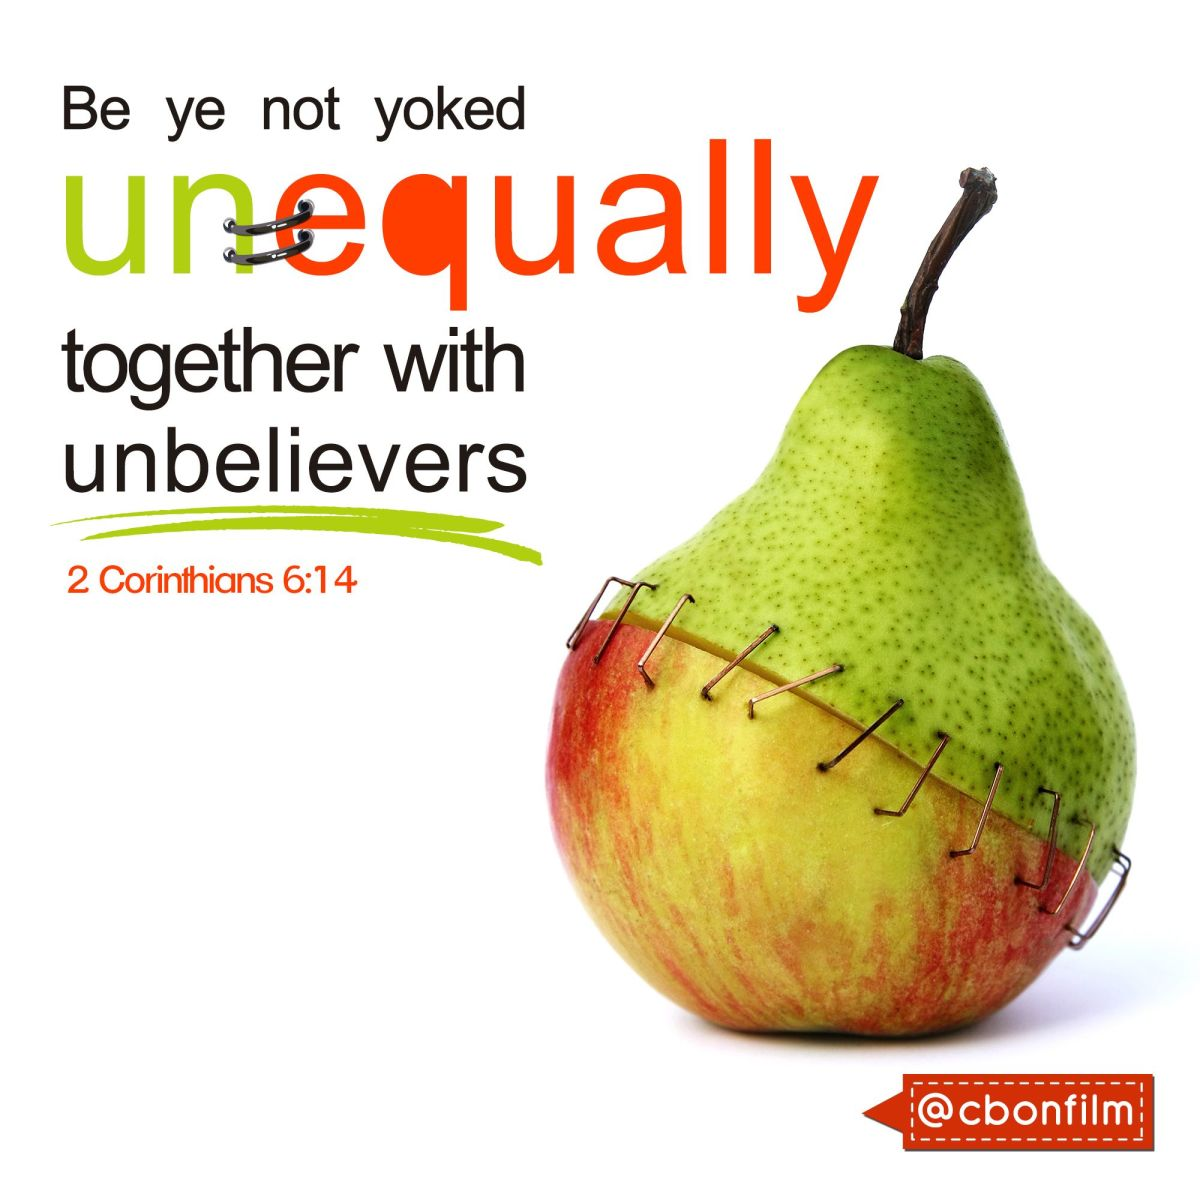 Don't lose your salvation because of unbelievers